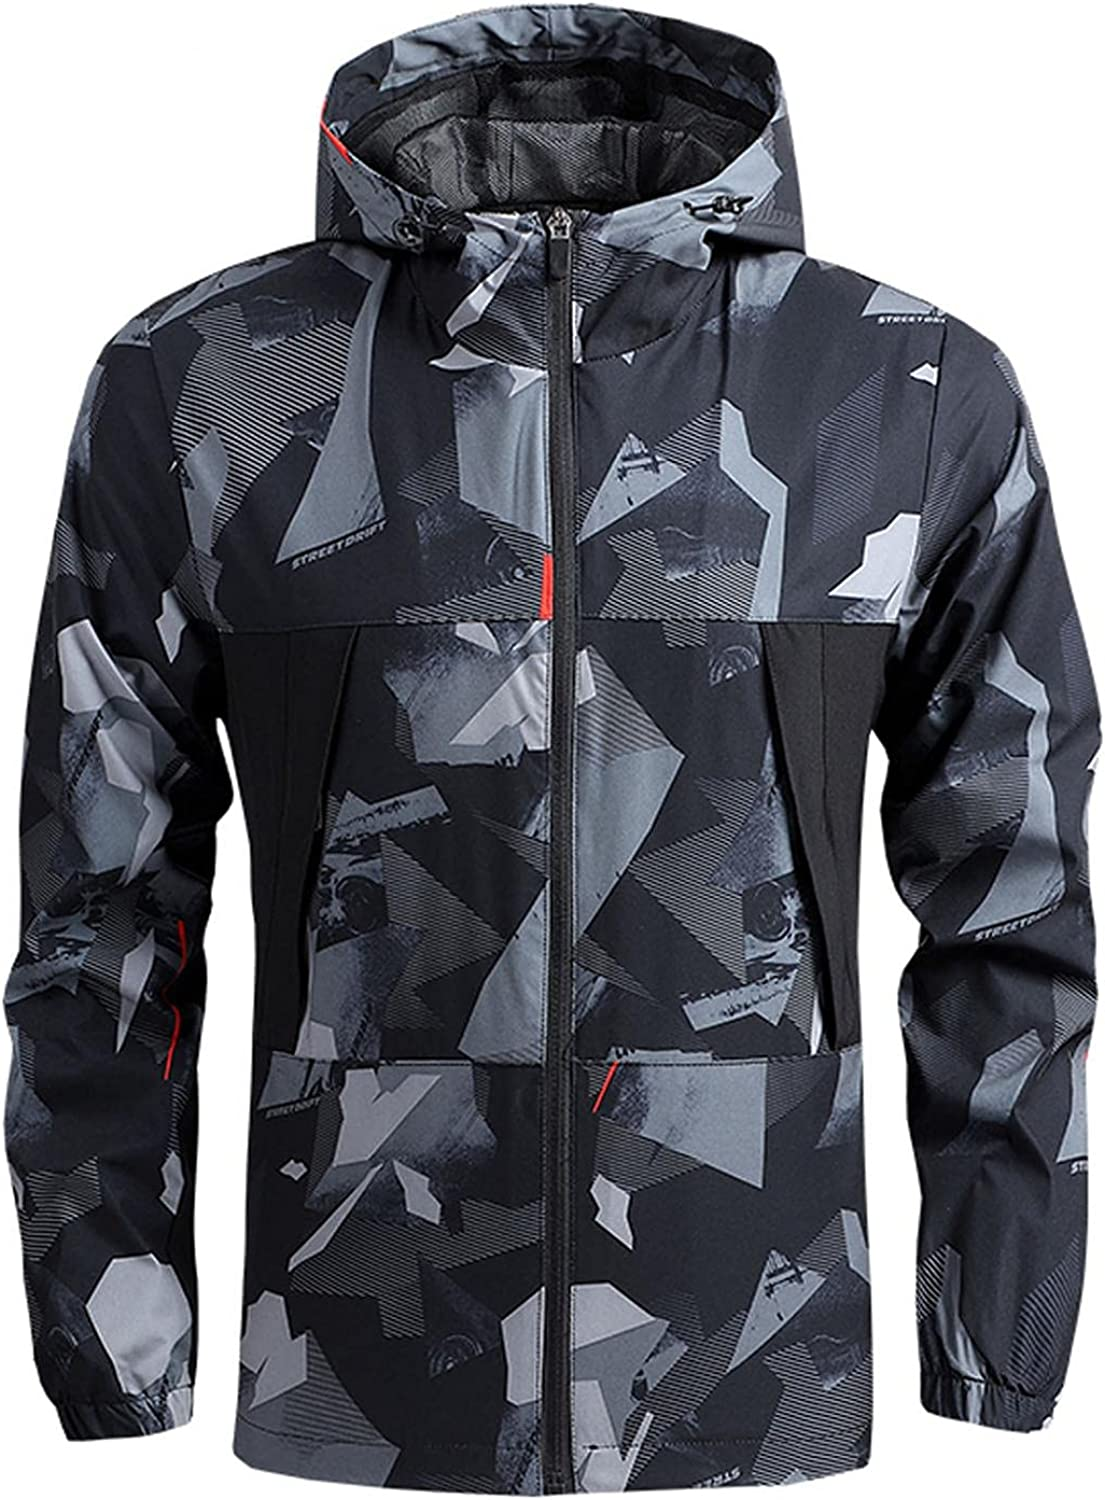 Huangse Full Print Jacket for Men Casual Plus Size Loose Fall Thin Windproof Waterproof Hooded Blouse Pullover Coat